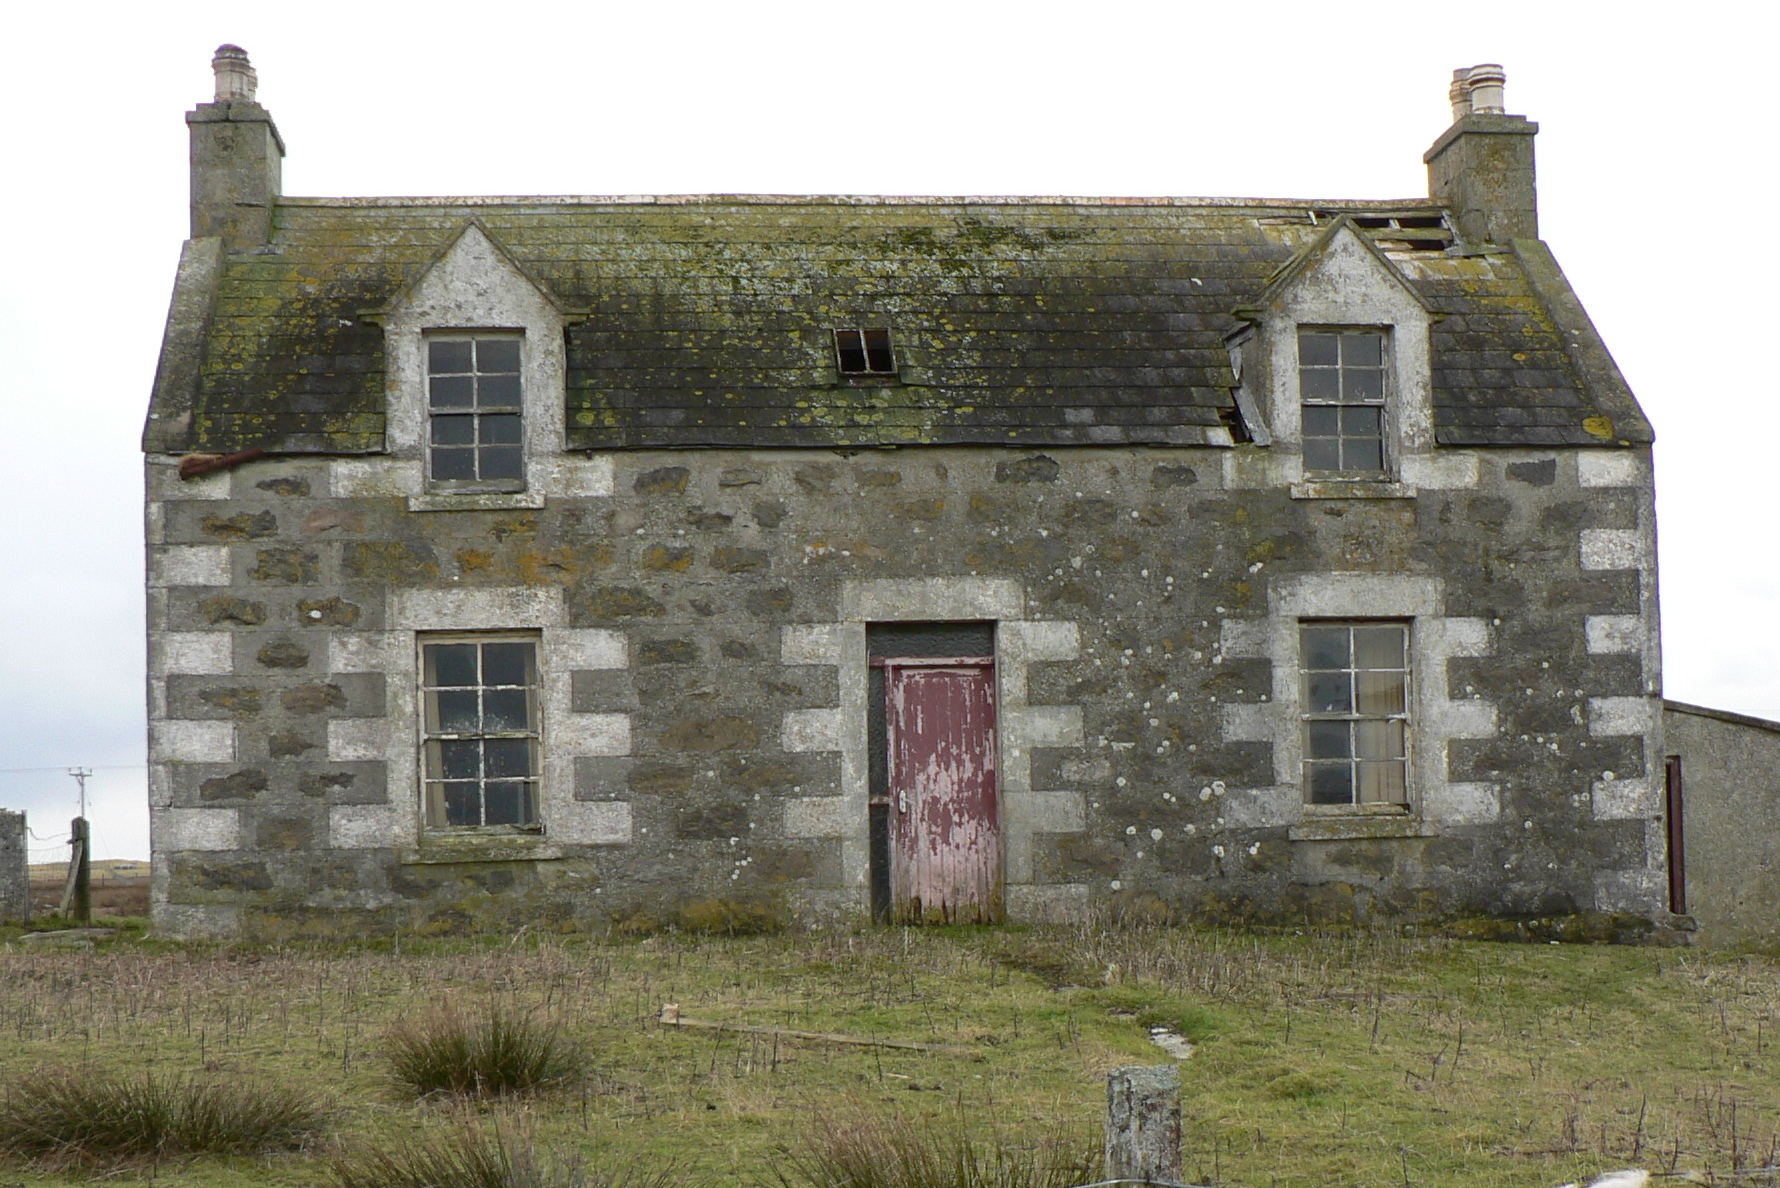 Back roads scotland askernish my usual game david owen for This old housse